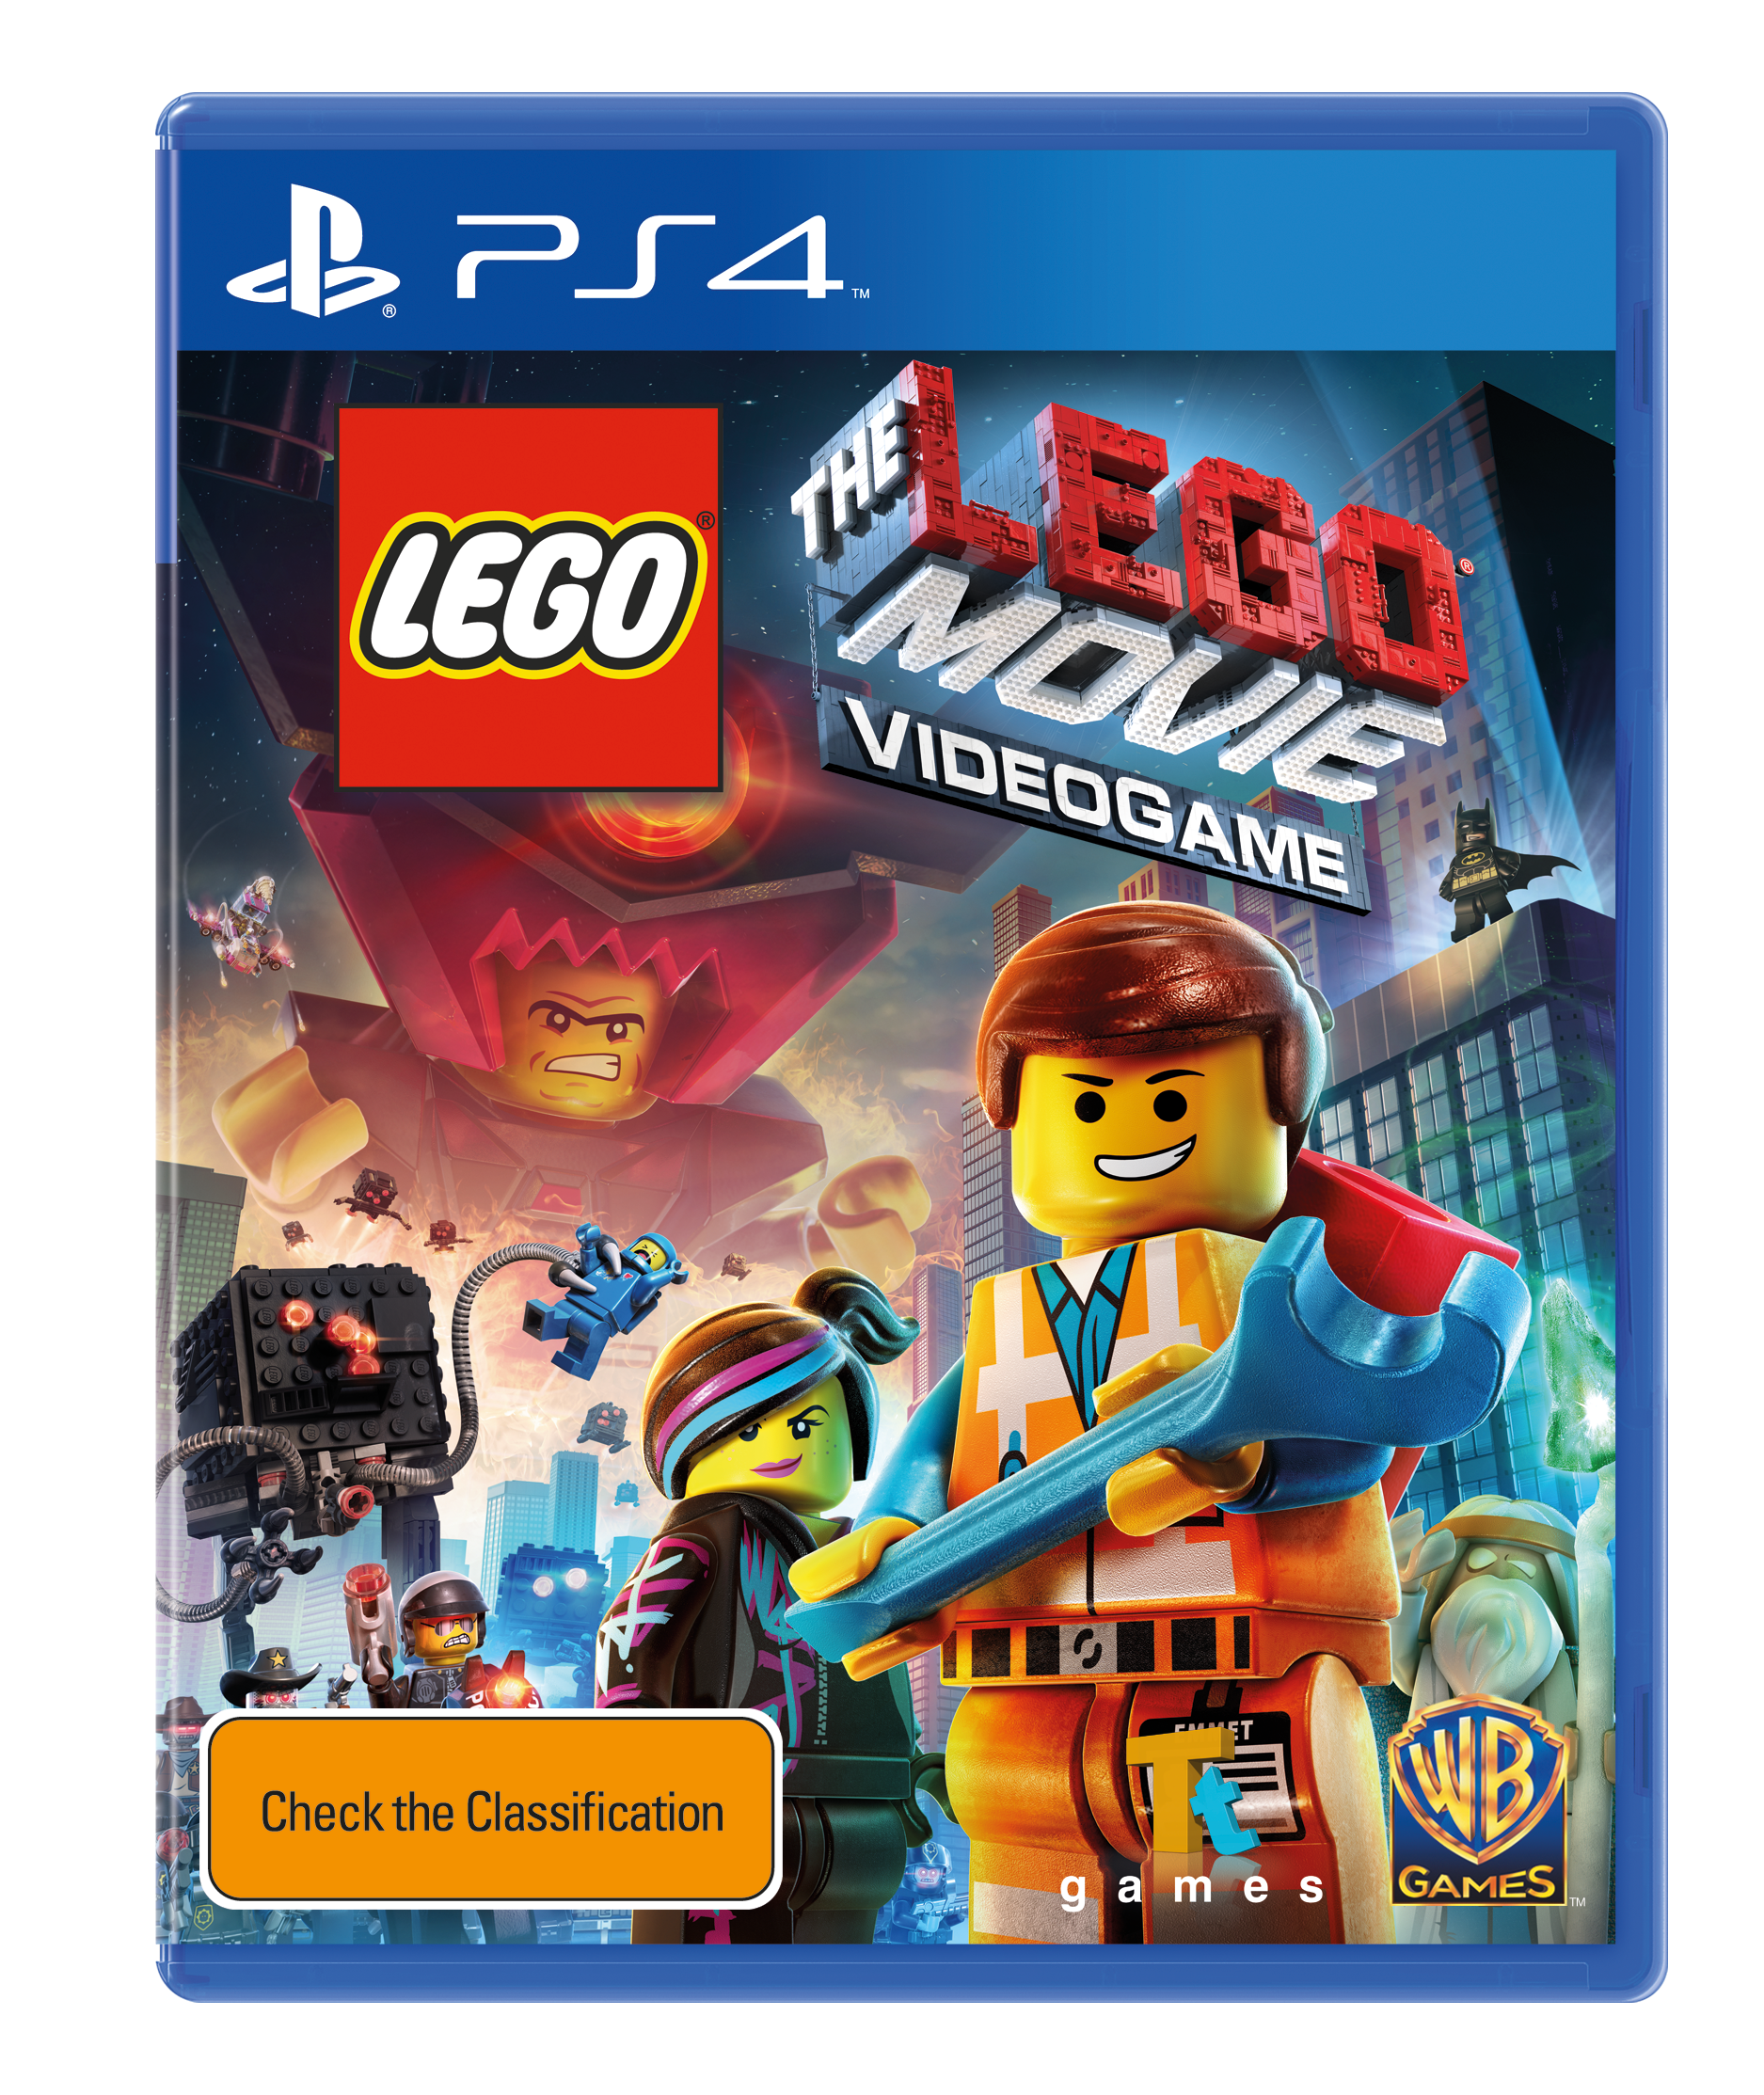 The LEGO Movie Videogame Box Art Unveiled